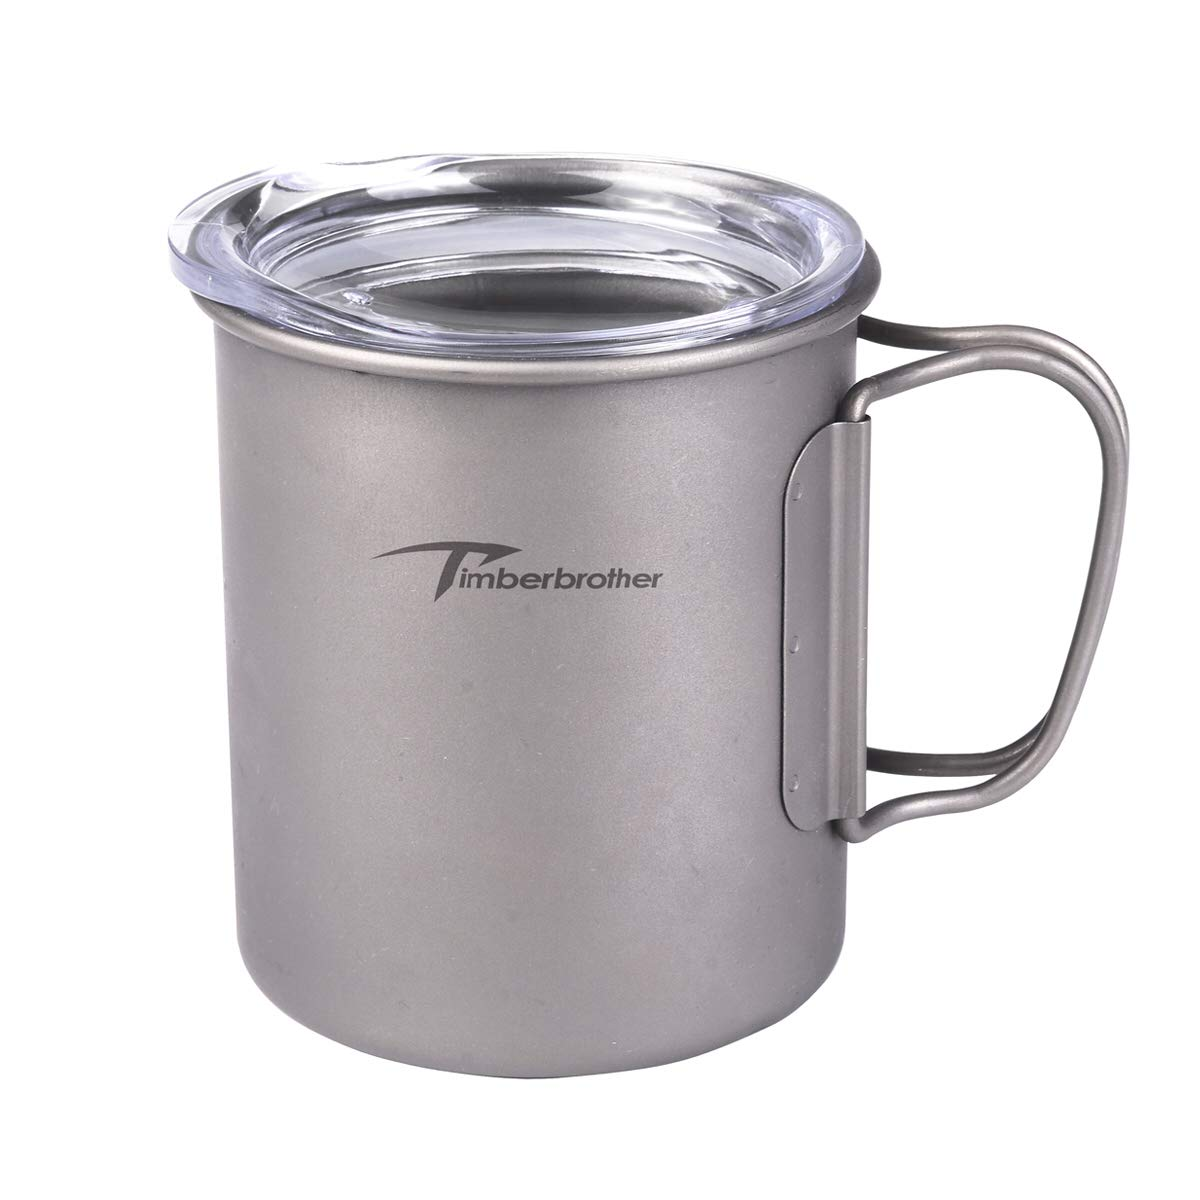 Timberbrother 10oz 300ml Mug Titanium Double Wall Cup with Lid